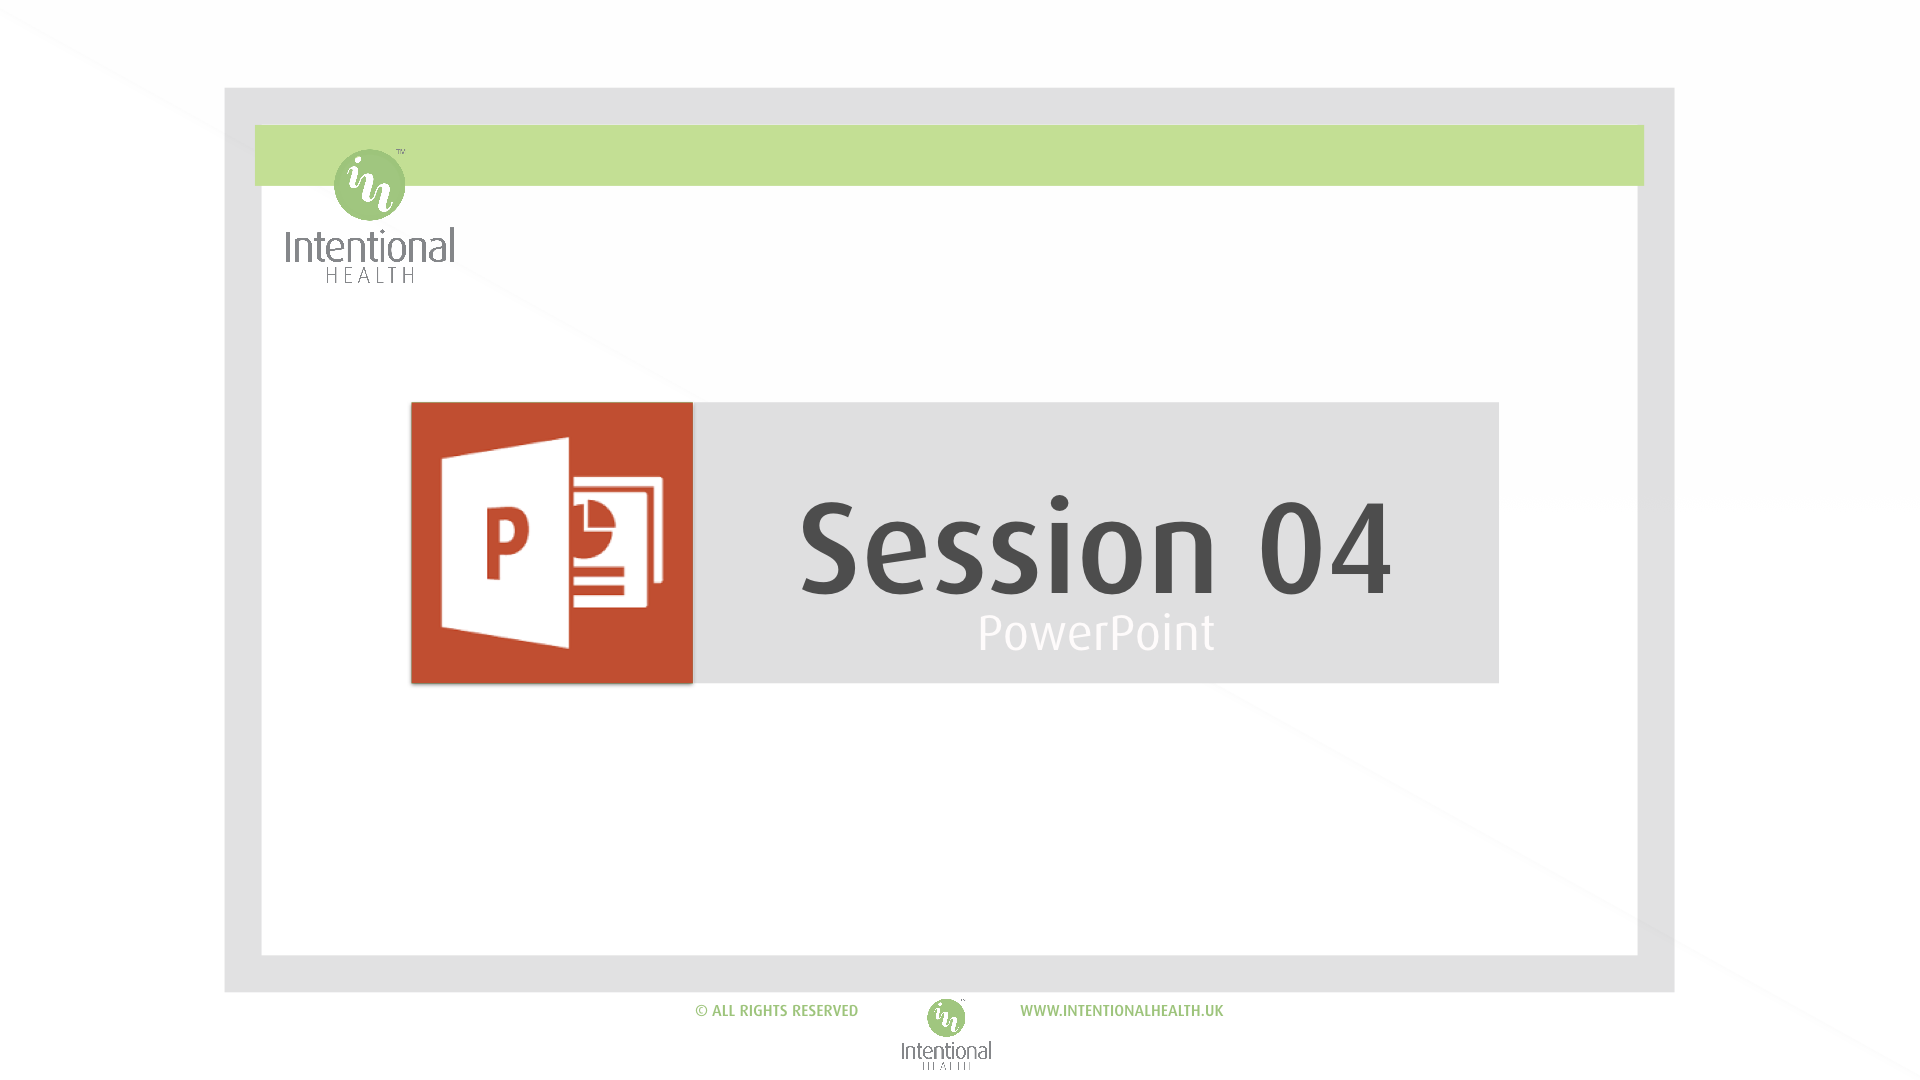 Session 04 Powerpoint